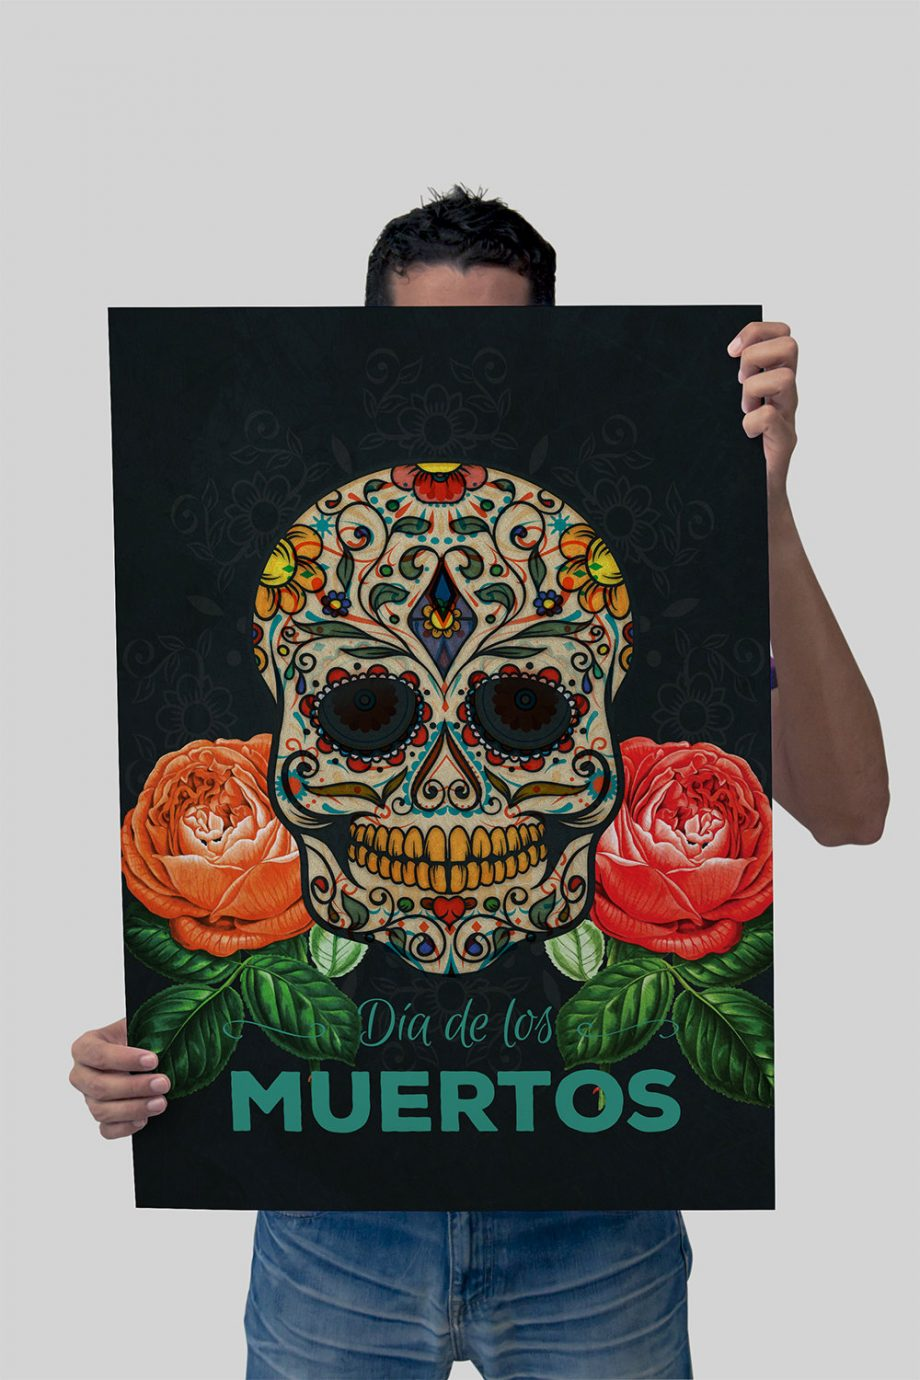 Dia De Los Muertos Mexican Retro Sugar Skull Illustration Art Print Vintage Giclee on Cotton Canvas and Paper Canvas Poster Wall Decor